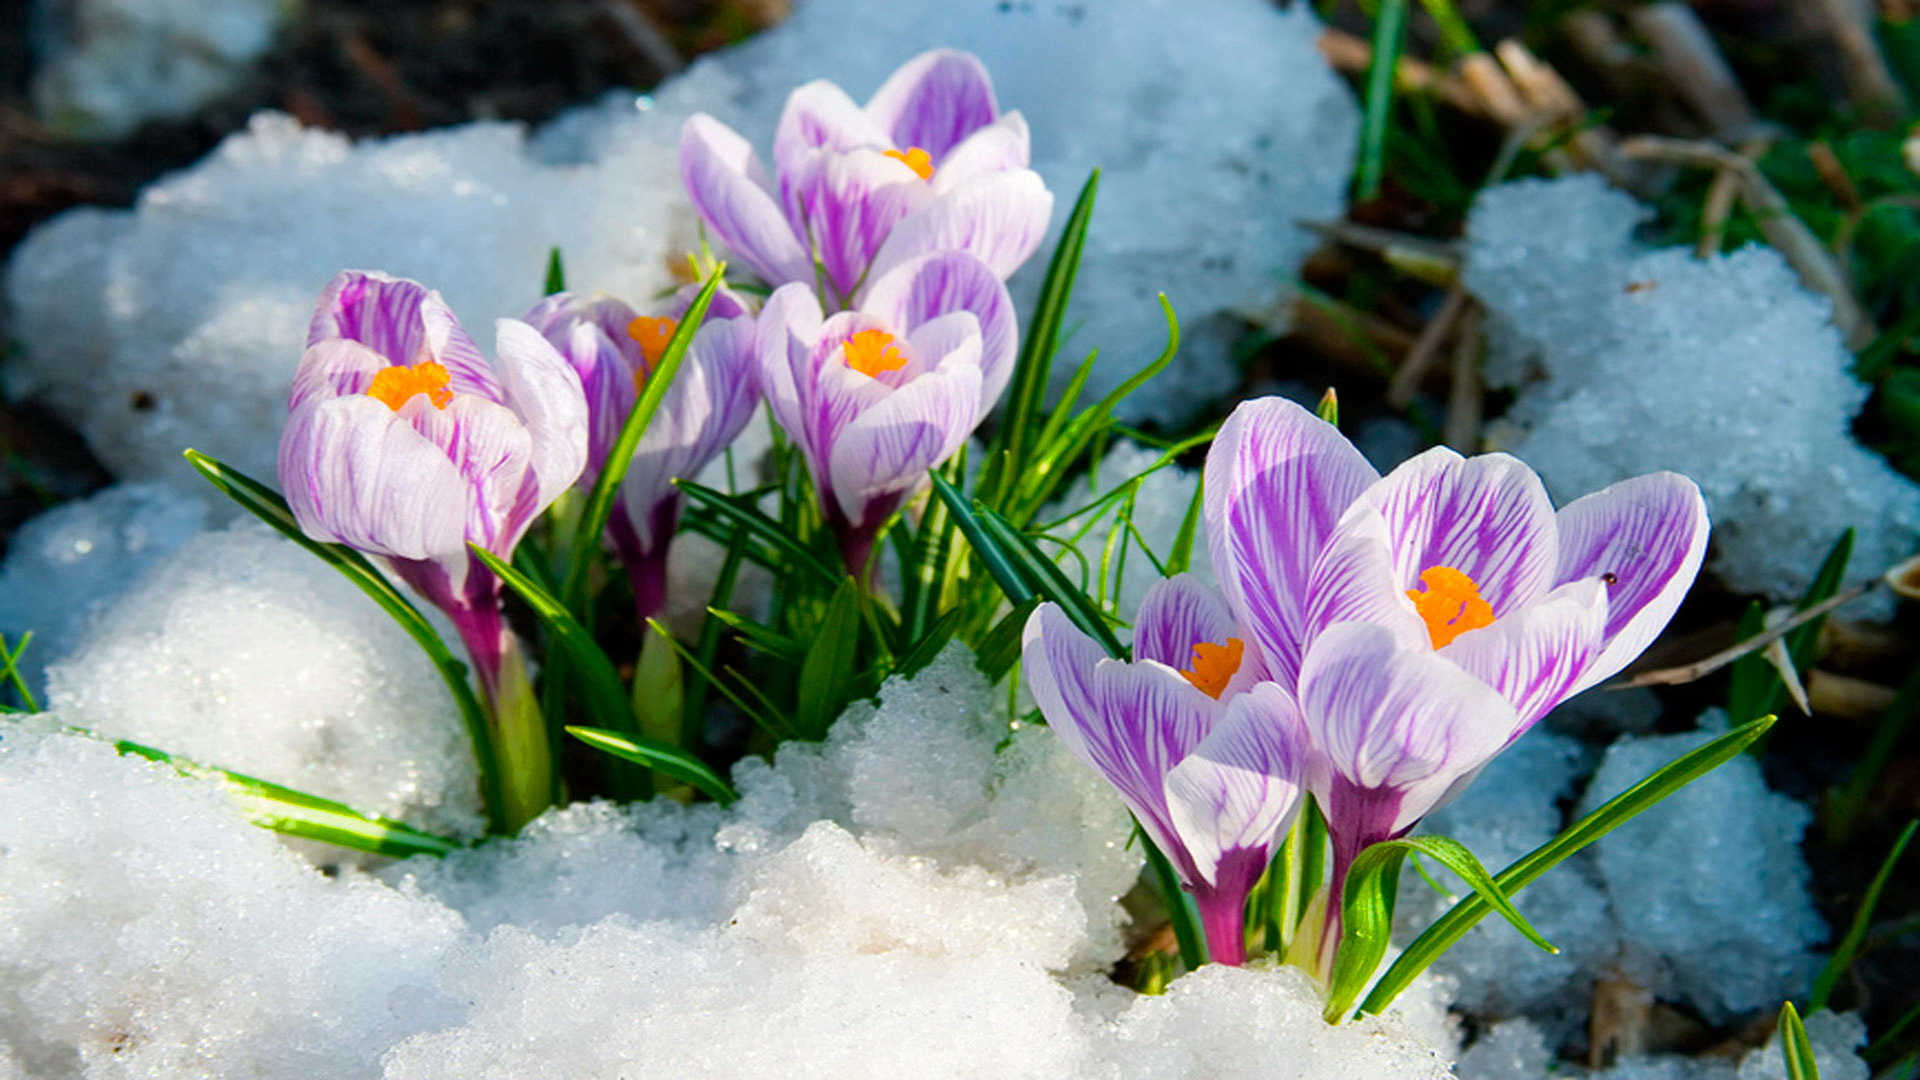 Early Spring Flowers Wallpaper - WallpaperSafari |Spring Thaw Background Computer